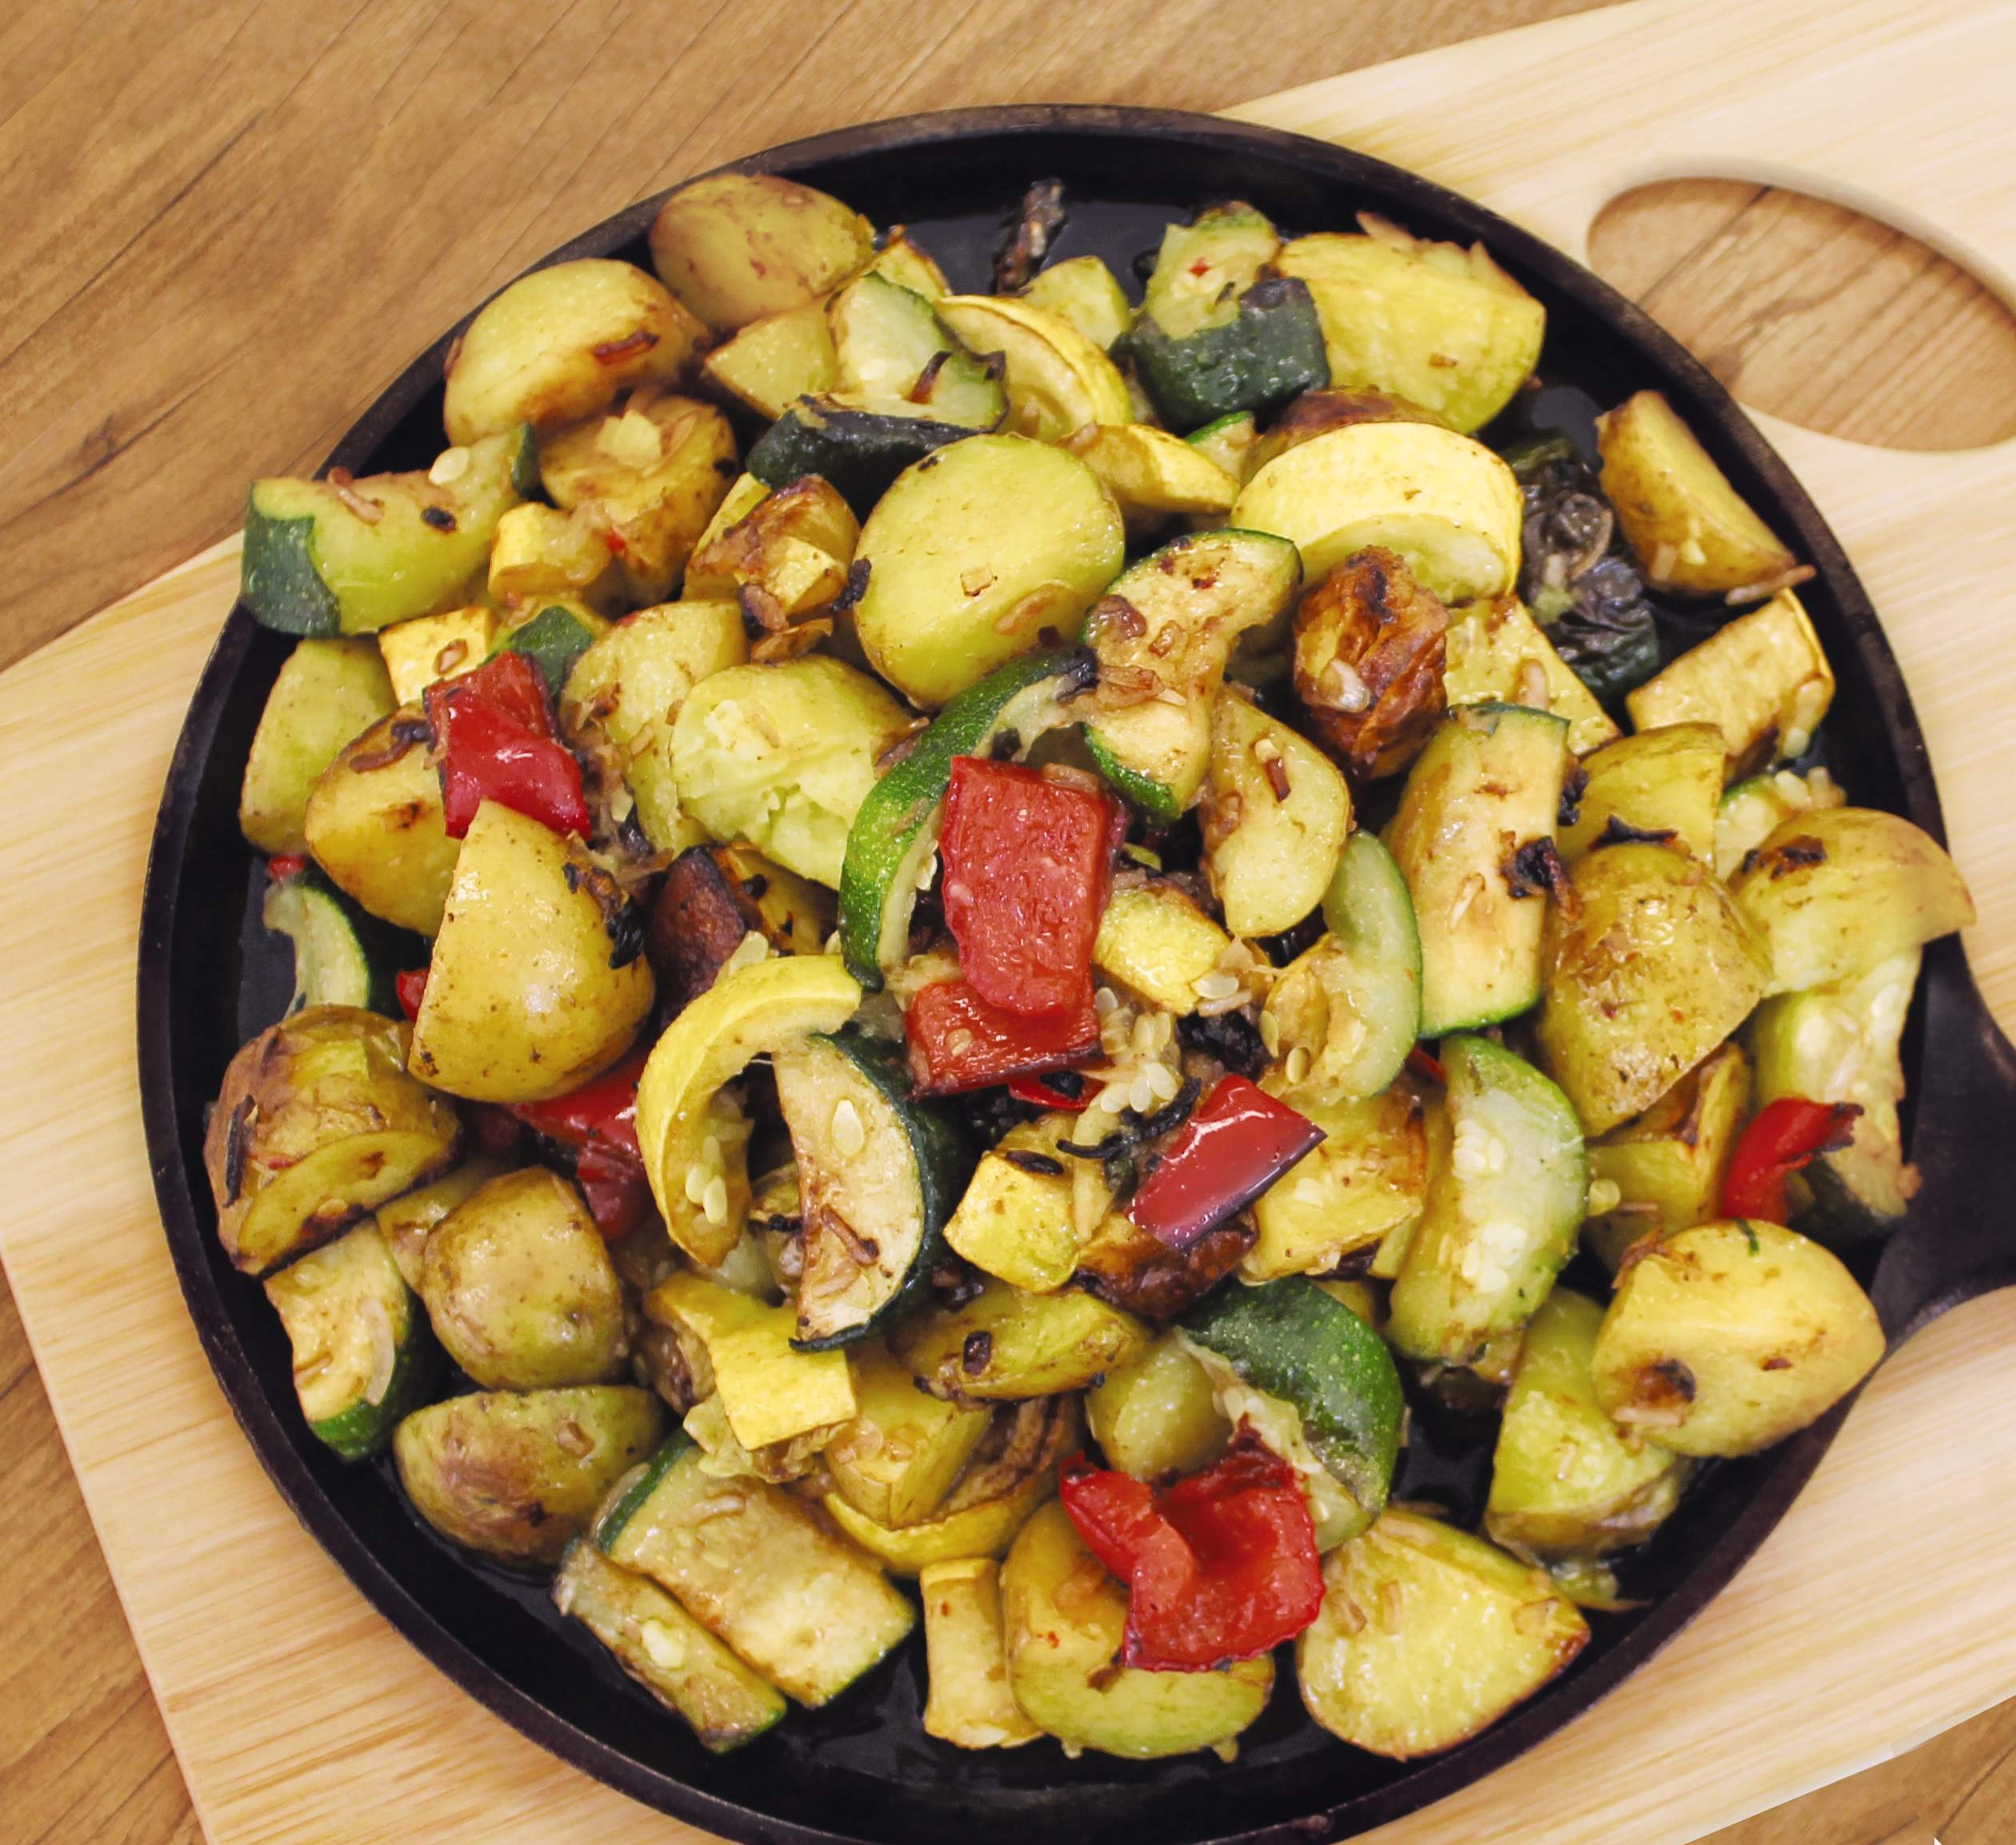 Summer grilled potatoes and mixed veggies.